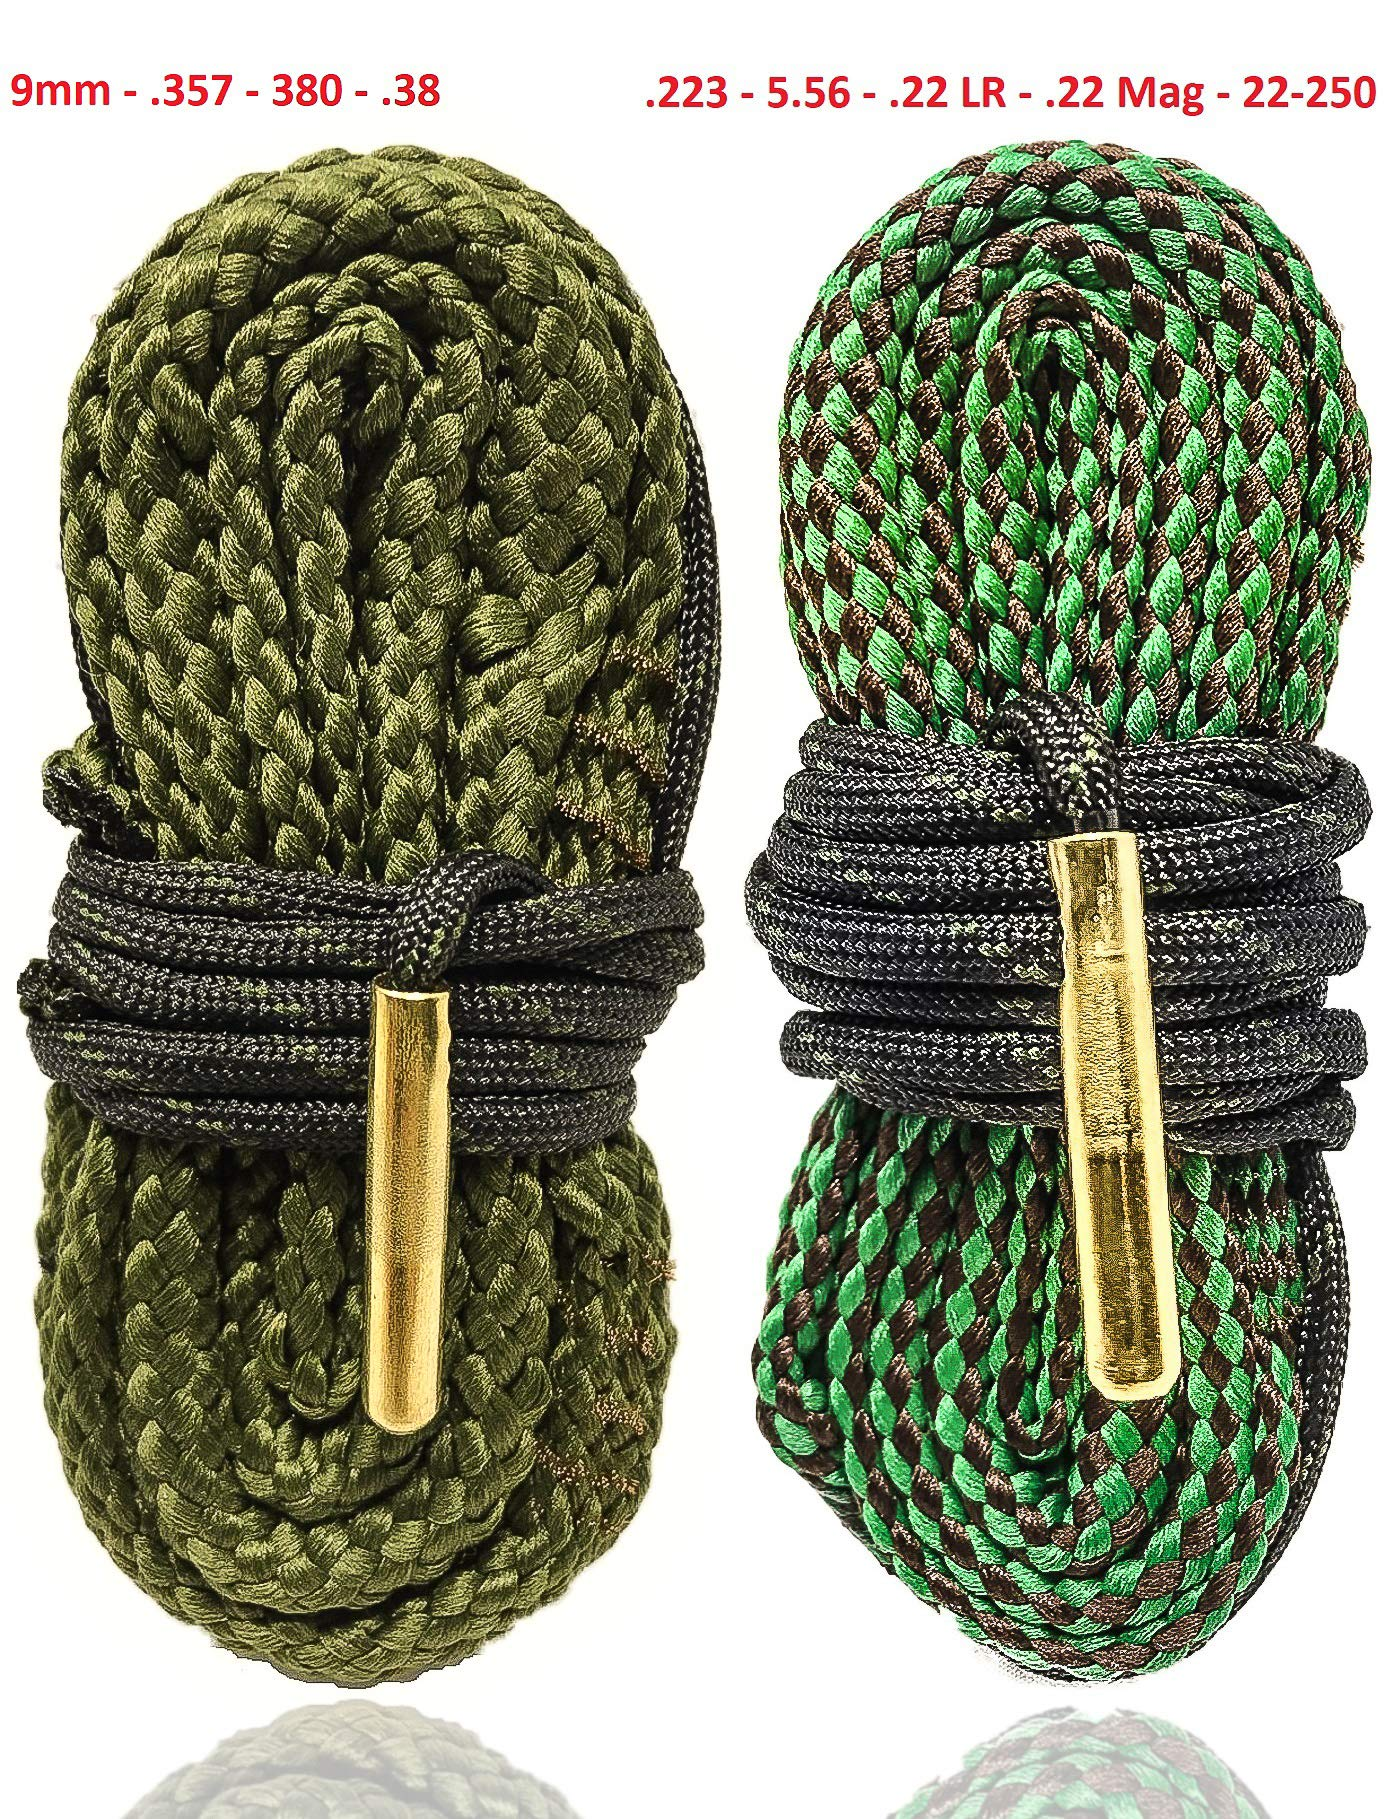 Big Country Wholesale Rifle and Pistol Cleaning Combo Pack Bore Snakes for AR15 and 9MM Guns - Also Fits .223 5.56 .38 .357 Caliber Weapons - from Cobra Bore Snakes by Big Country Wholesale